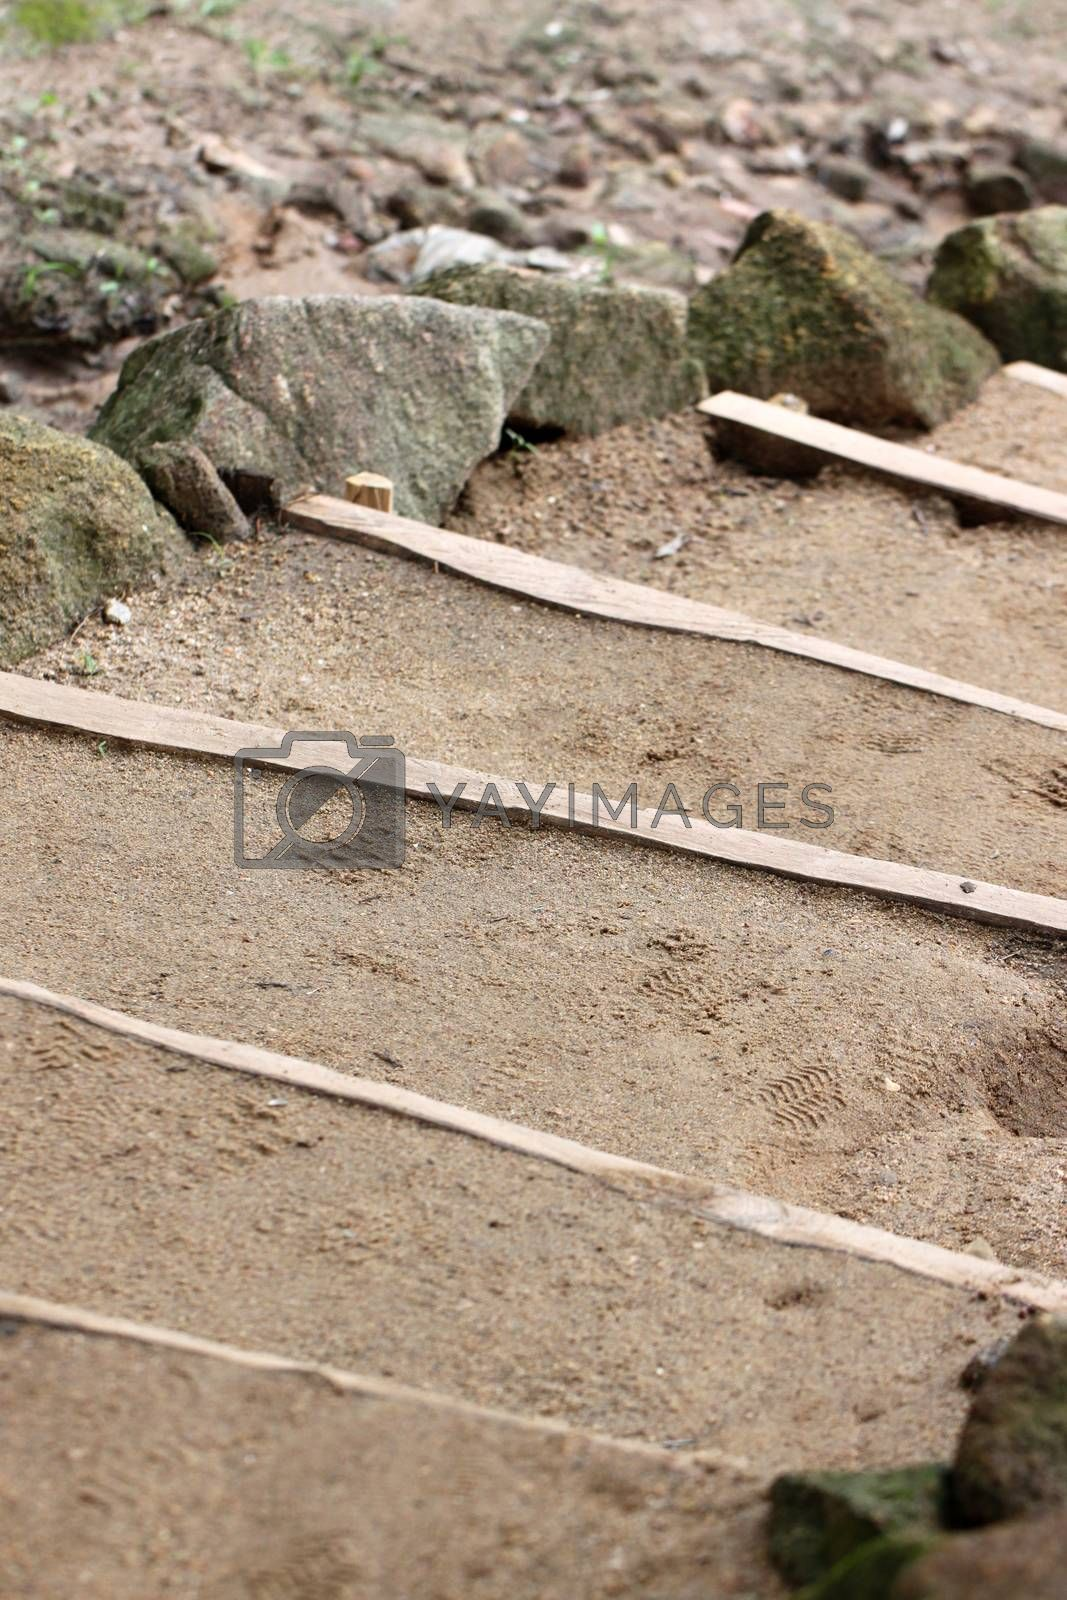 Stairs were made of sandy soil. by PiyaPhoto